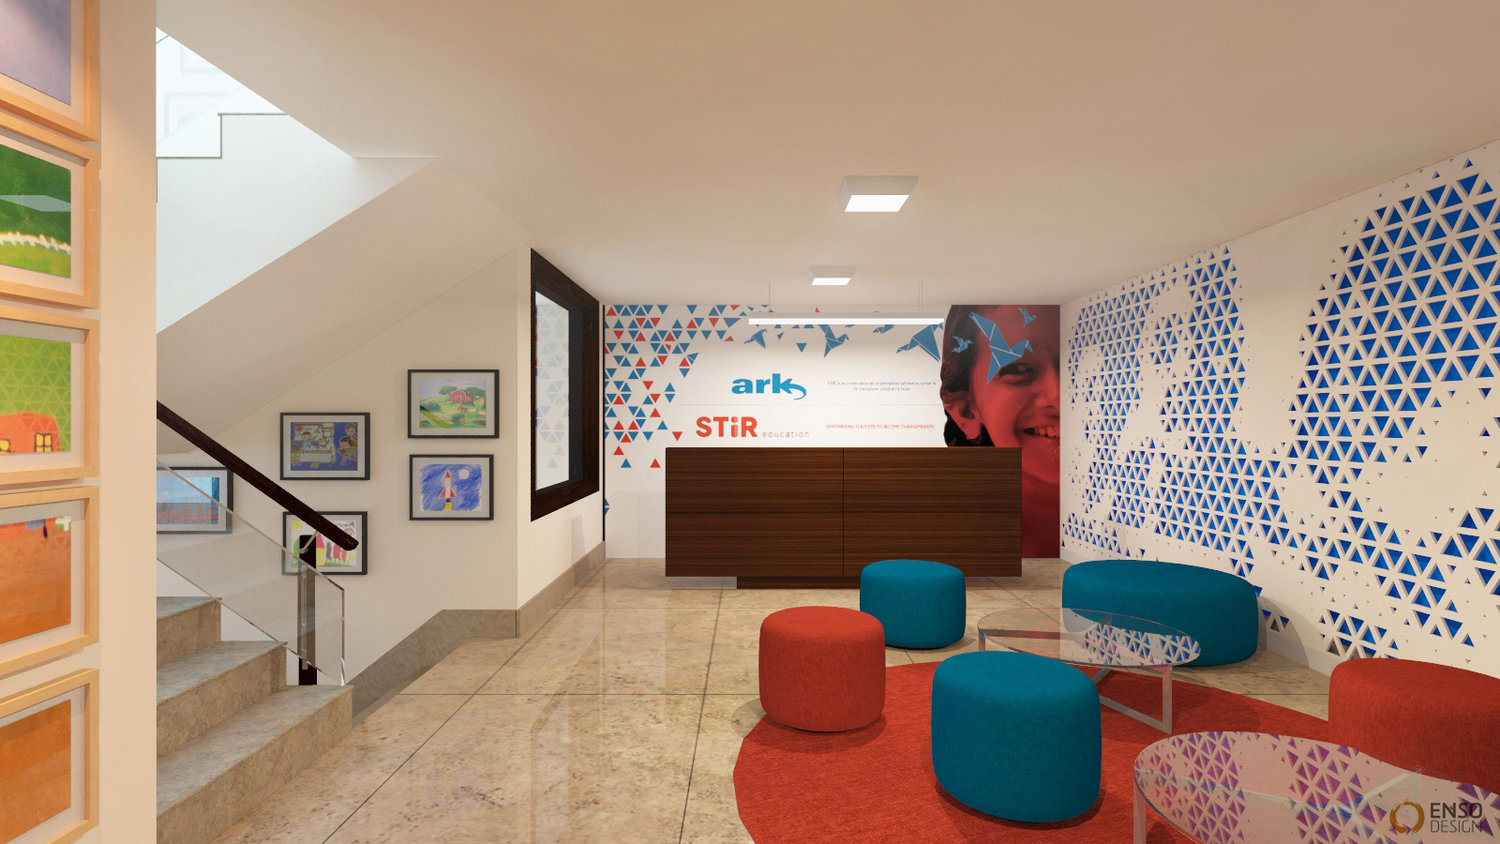 ark office - new delhi